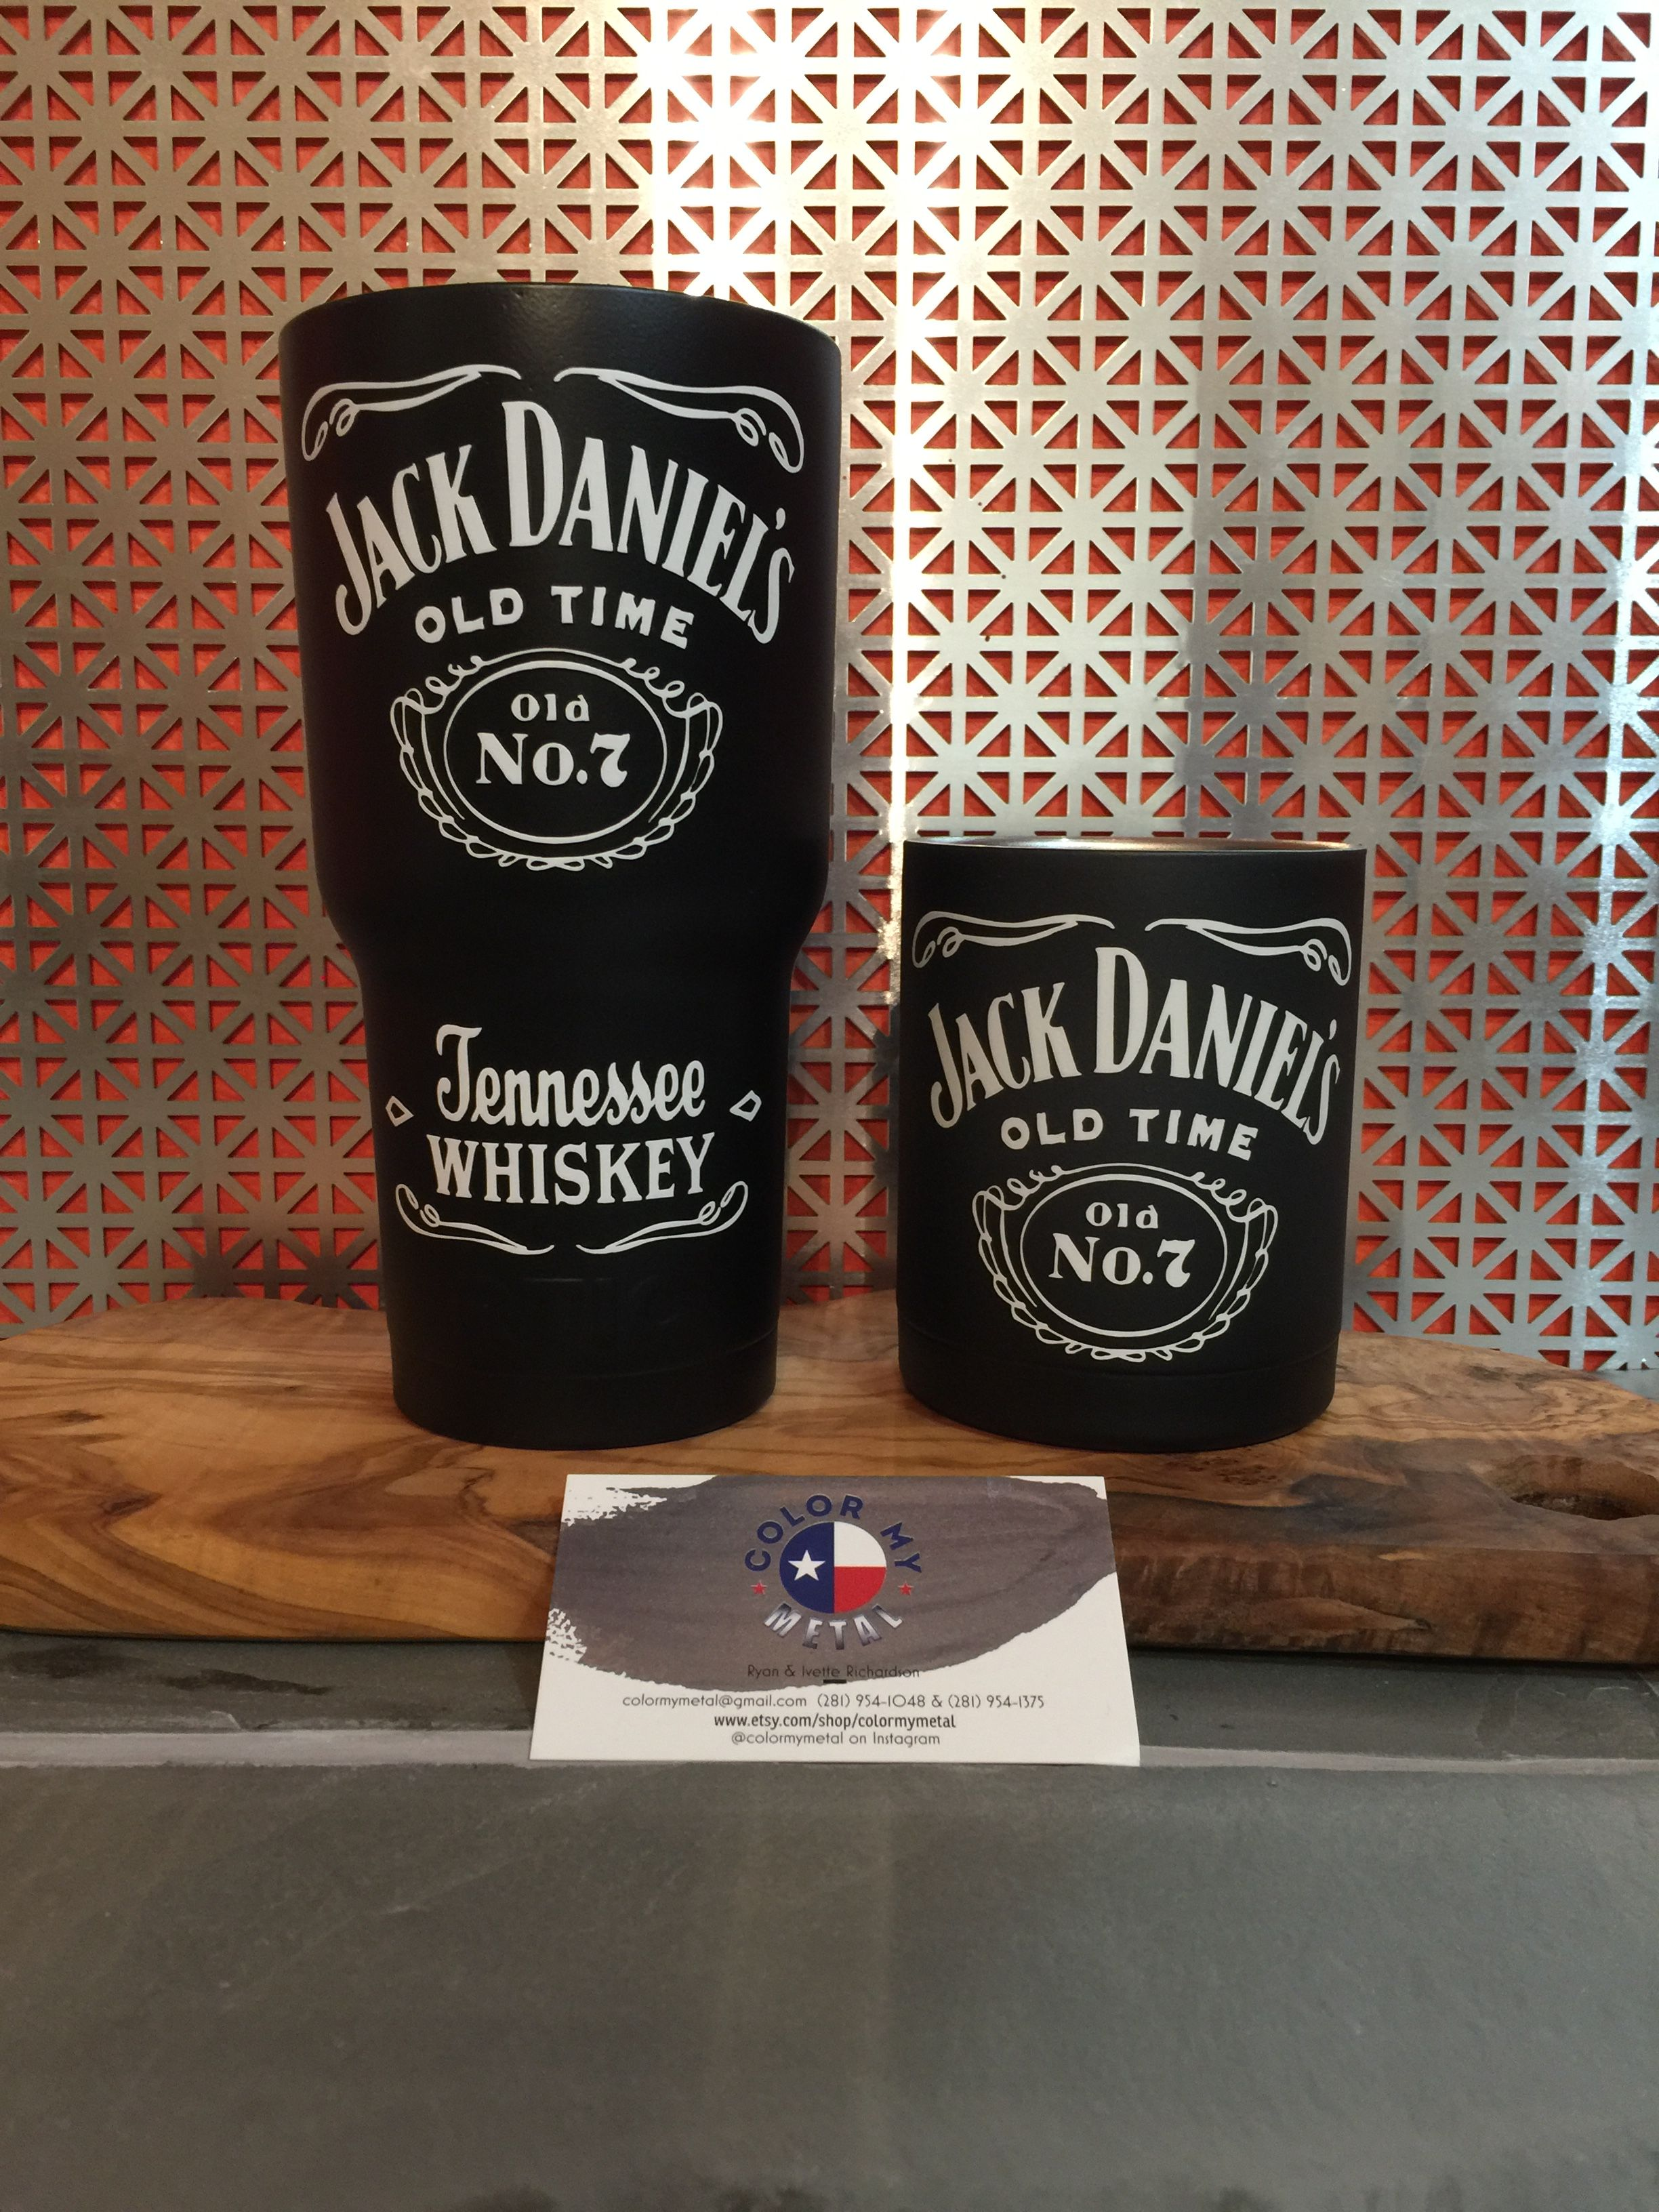 85c279d0682 Whiskey tumbler, cup, dipped yeti cup, yeti cup, jack Daniels cup,  Christmas gifts for him and her